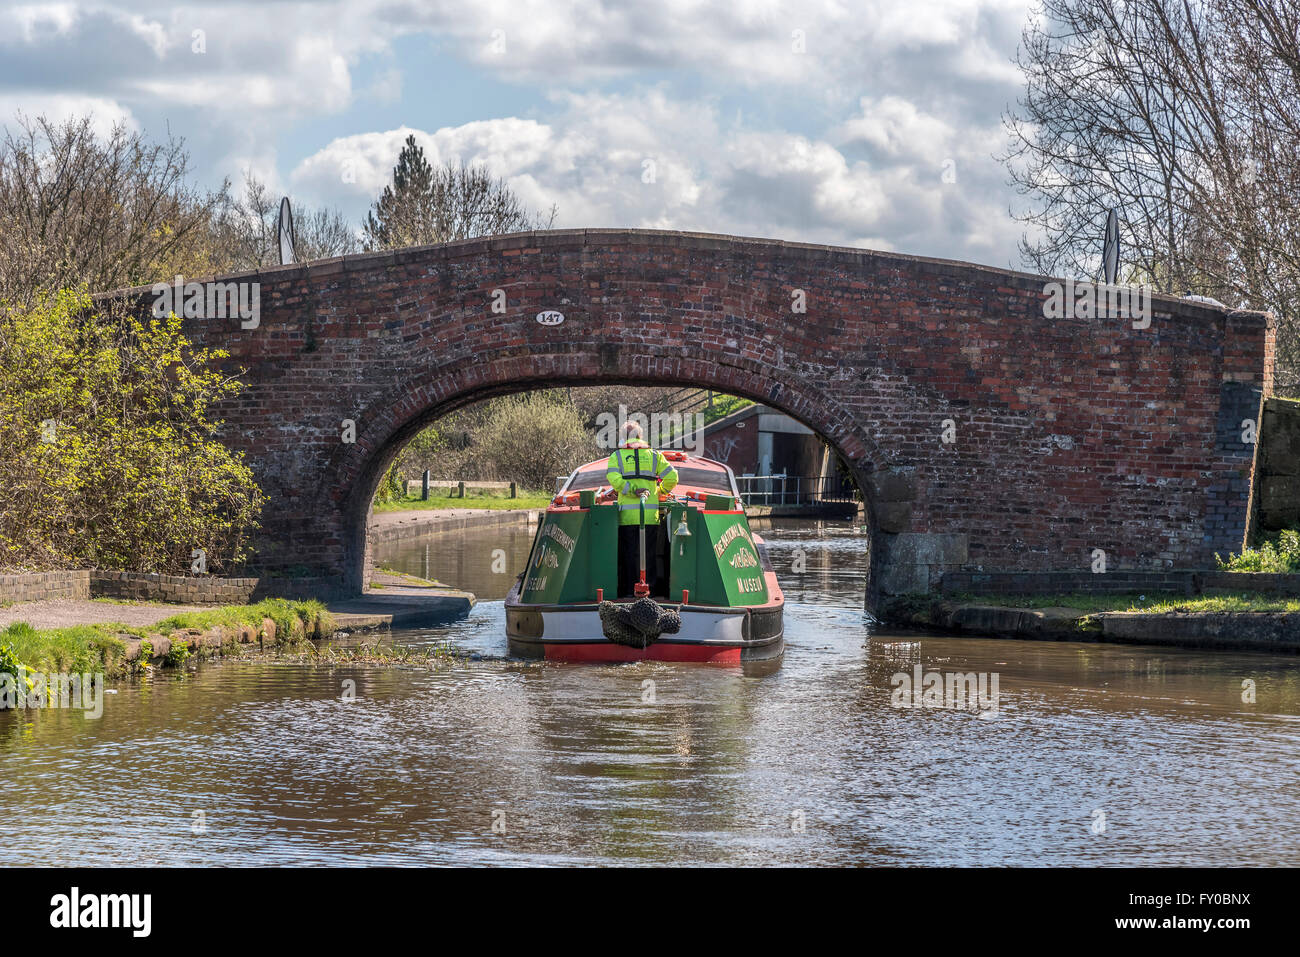 Canal narrowboat passes under an old brick bridge on The National Waterways Museum in Ellesmere Port, Cheshire, - Stock Image